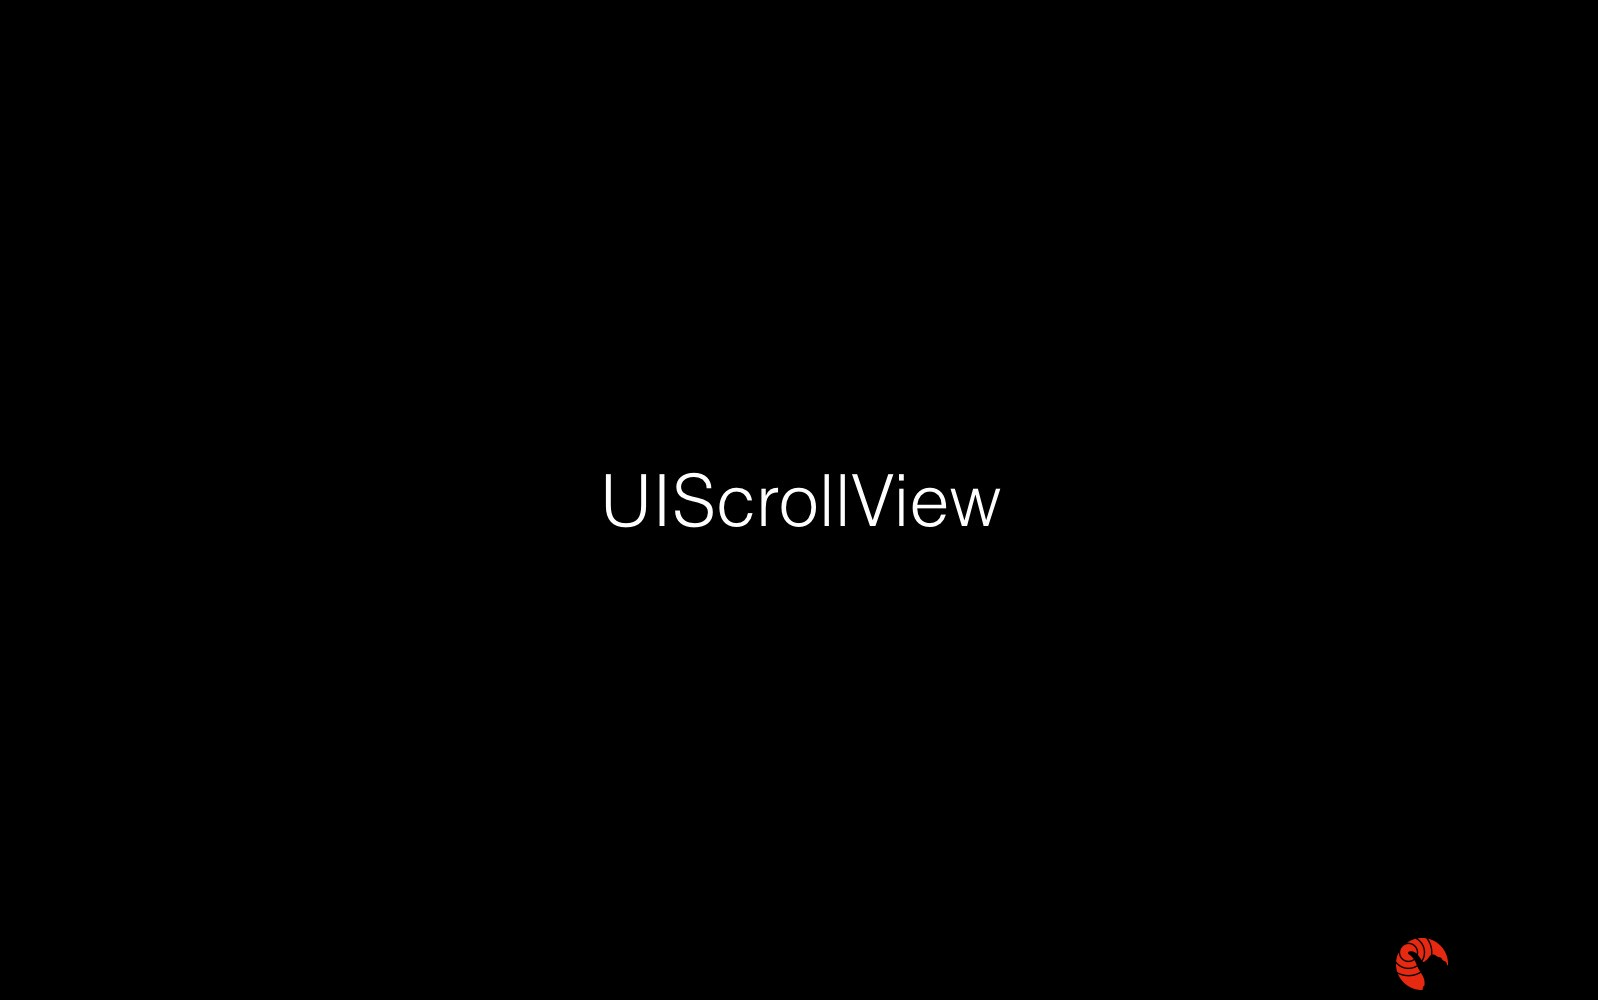 iOS控件详解之UIScrollView - 敏捷大拇指 - UIScrollView.png